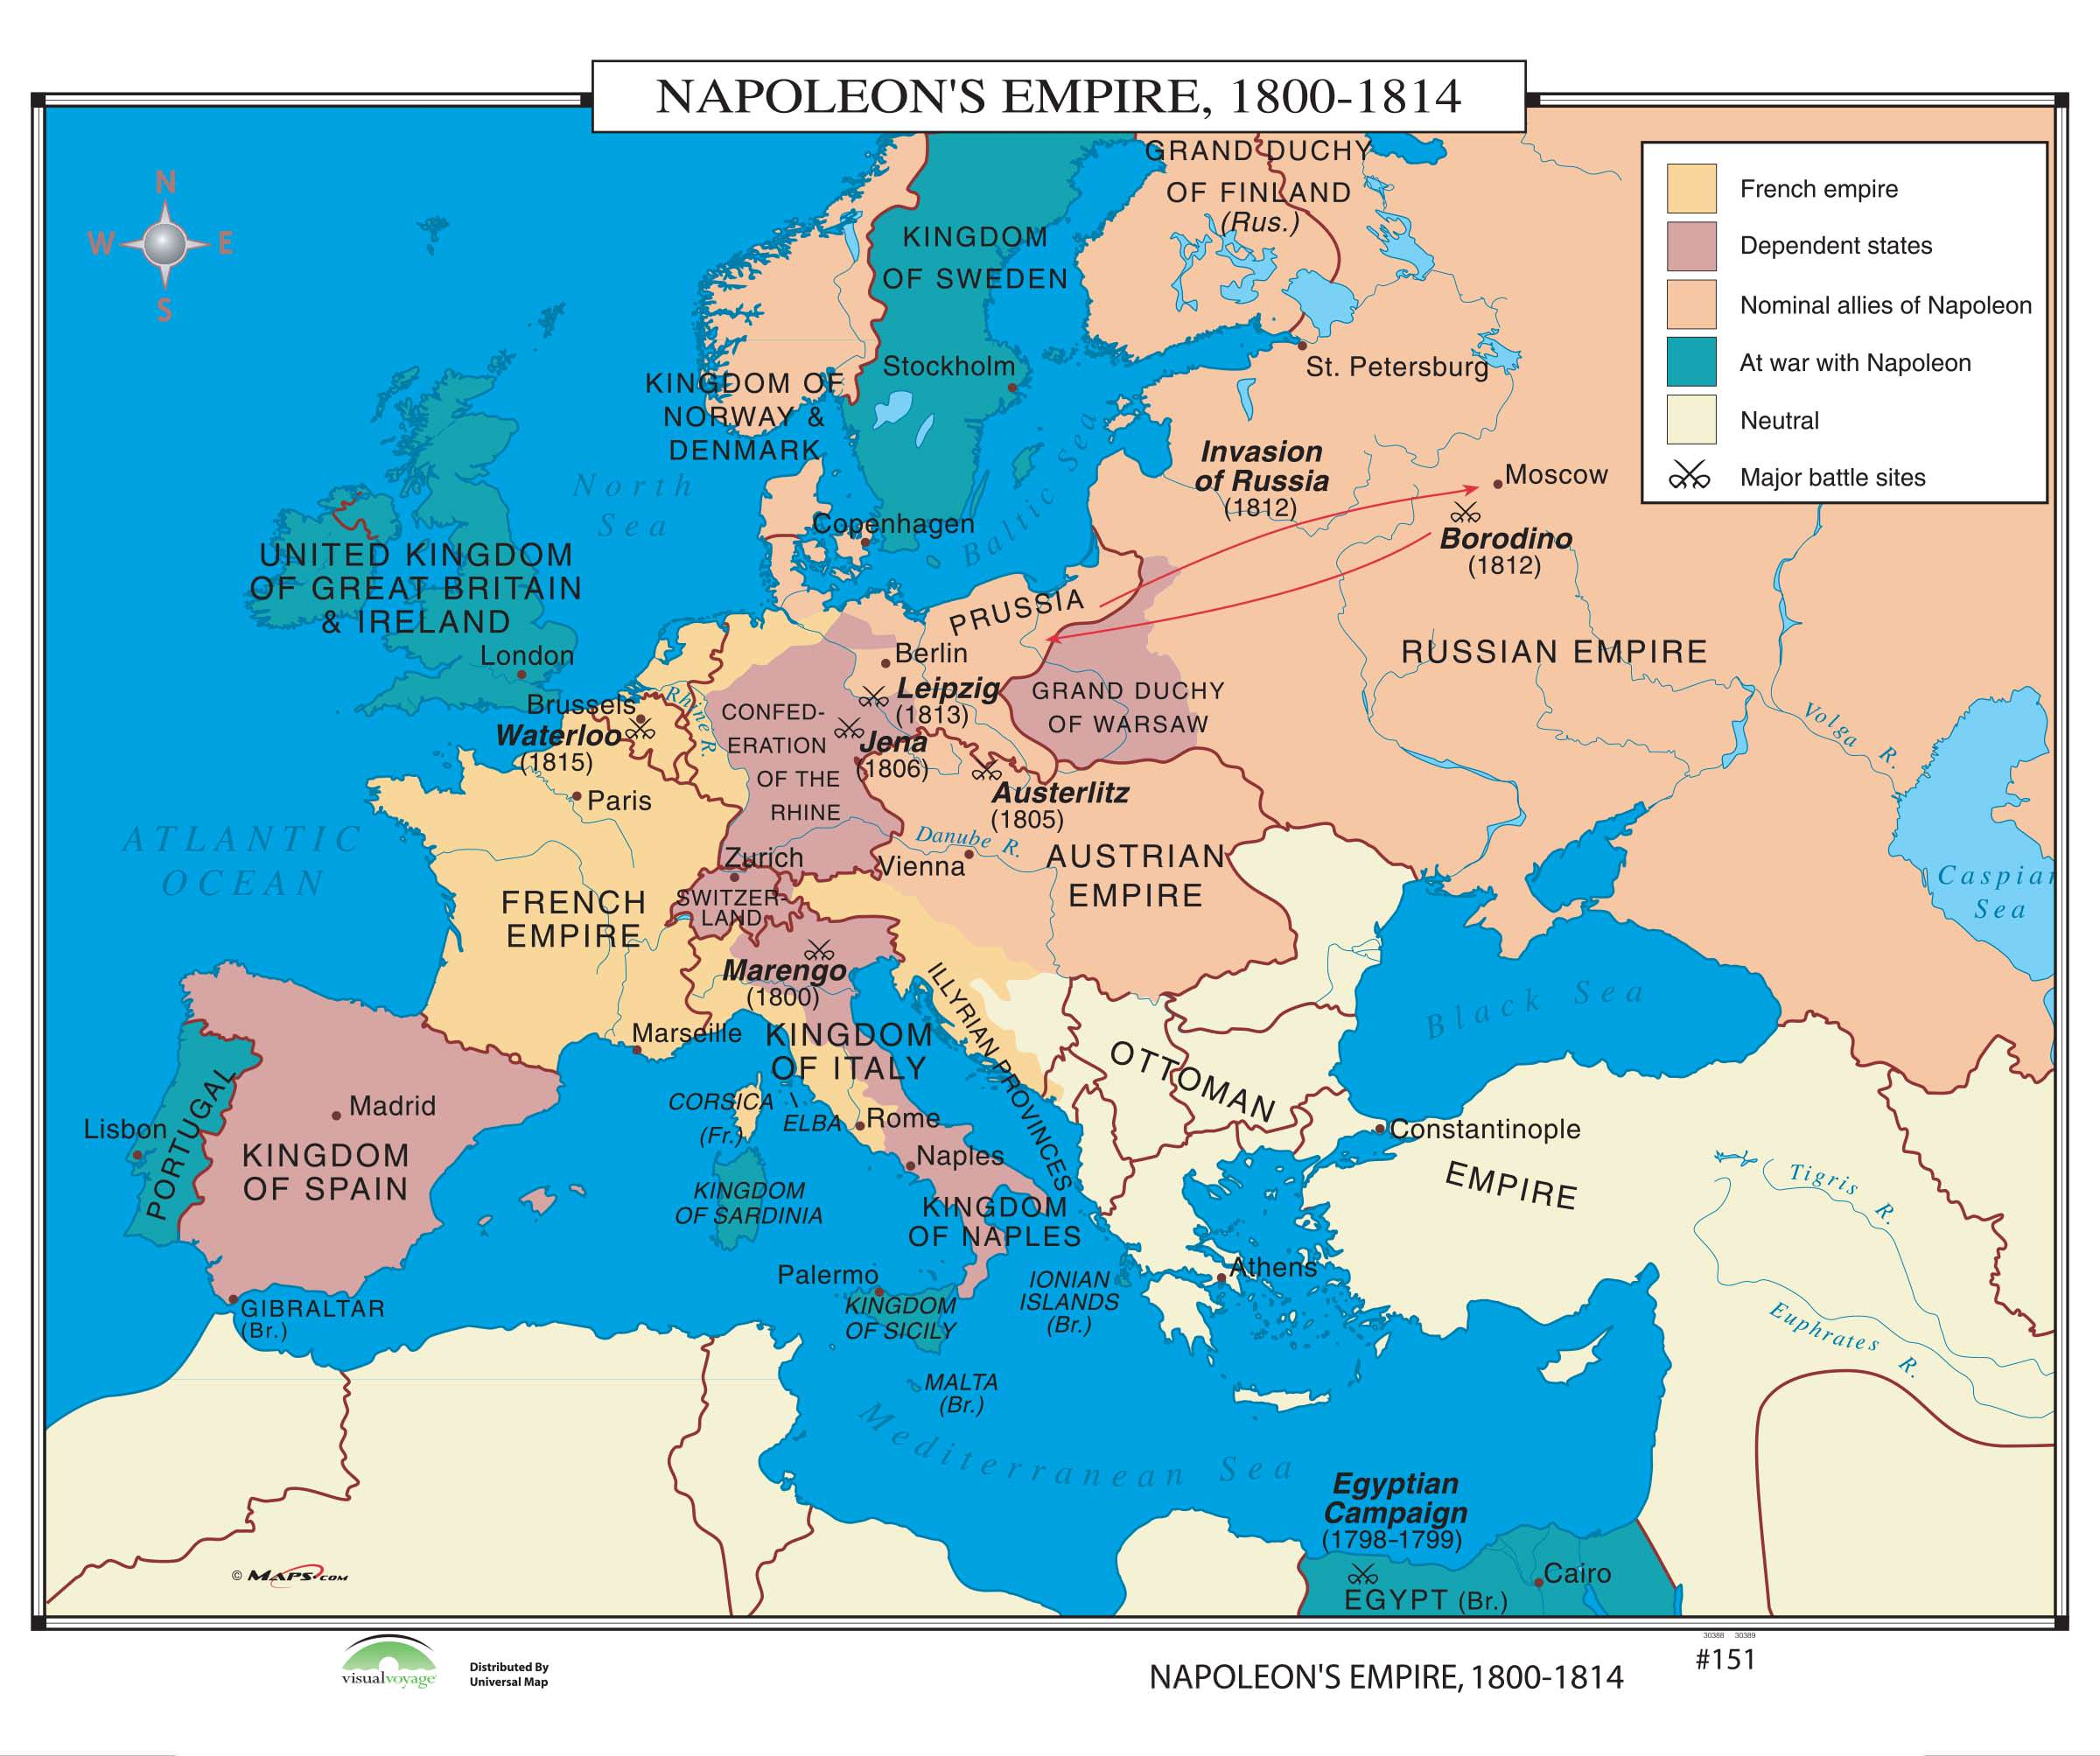 1800 Map Of The World.151 Napoleon S Empire 1800 1814 Kappa Map Group